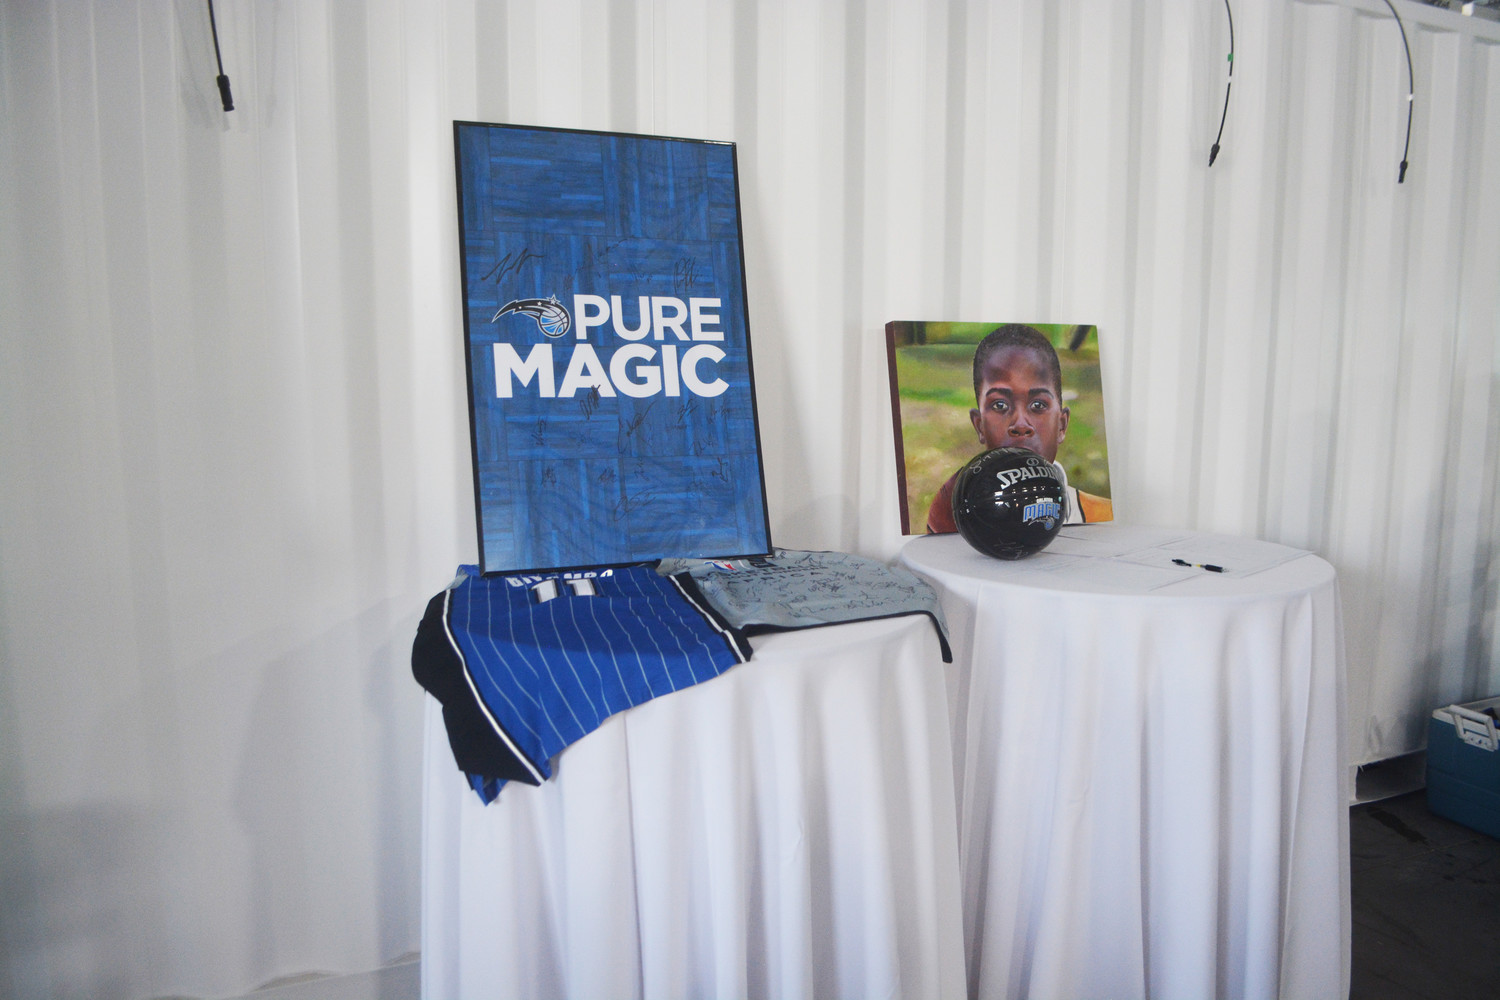 Orlando Magic memorabilia was auctioned off at the fundraising event to support Biyombo's effort to provide health services to the Congo.